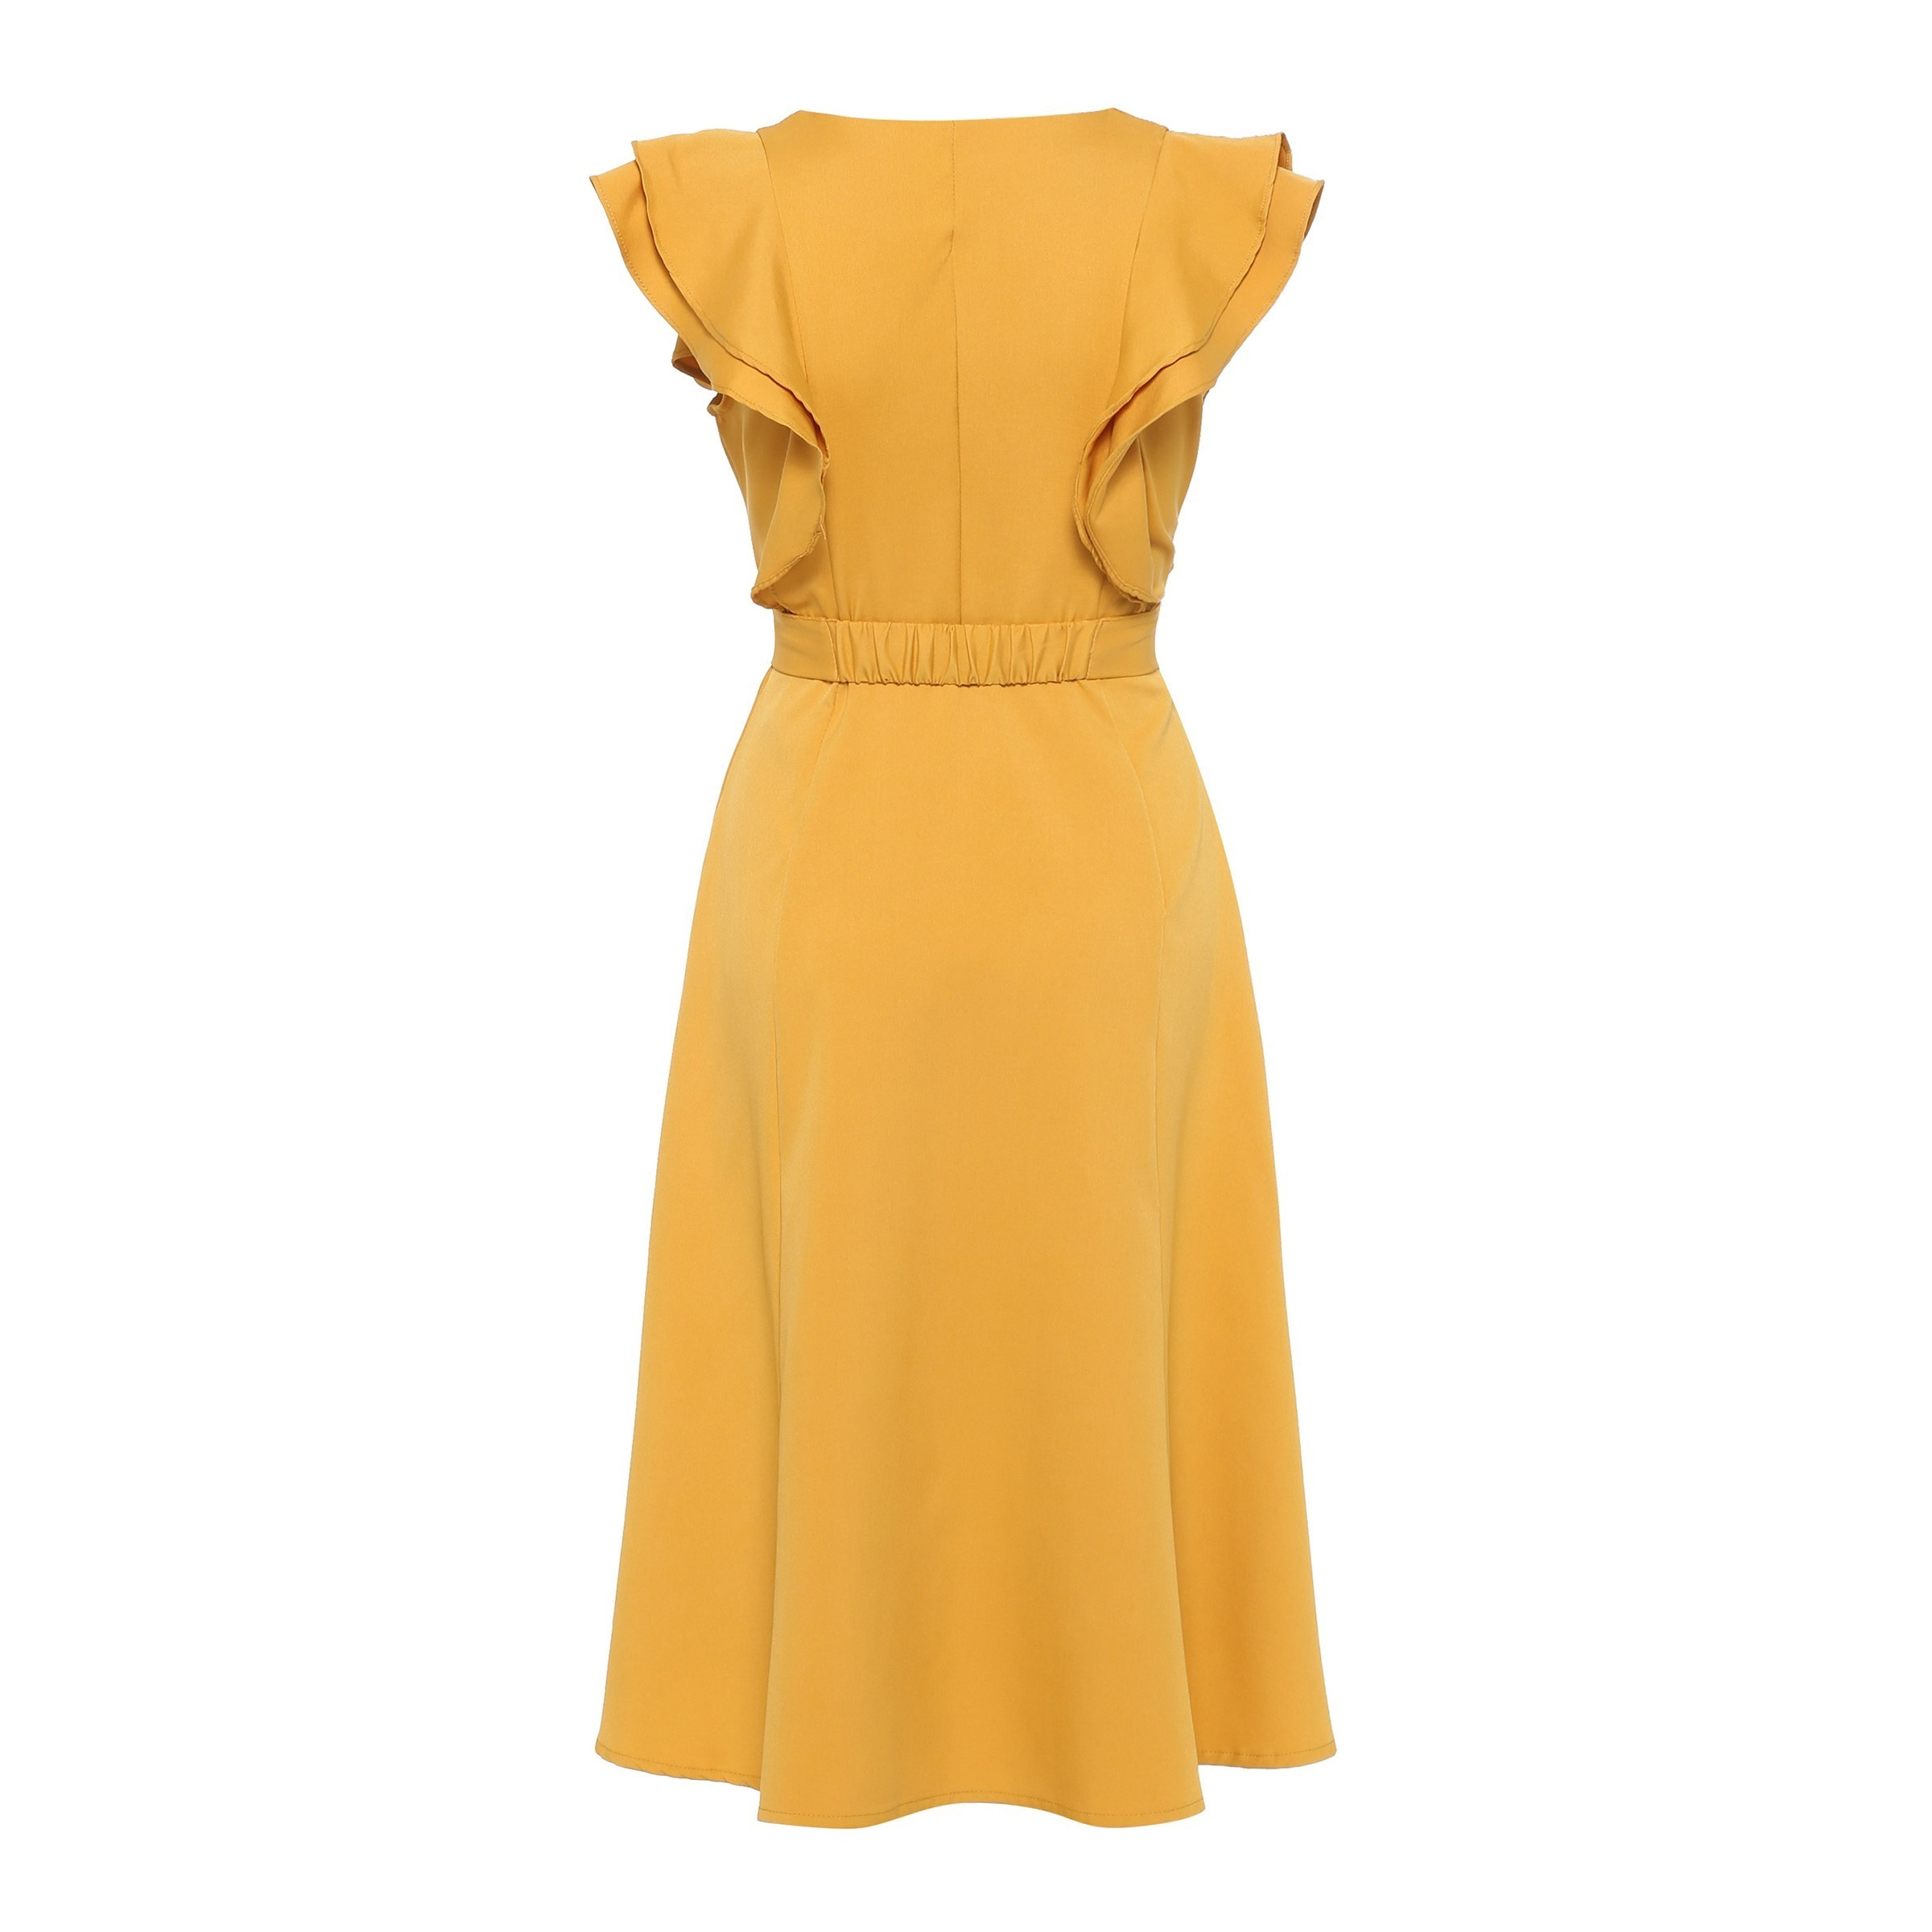 Kinikiss Yellow Women Pleated Sleeveless Wave Cut Lace-up Sweet Party Summer Double-layer Elegant Vintage Dress Q190510